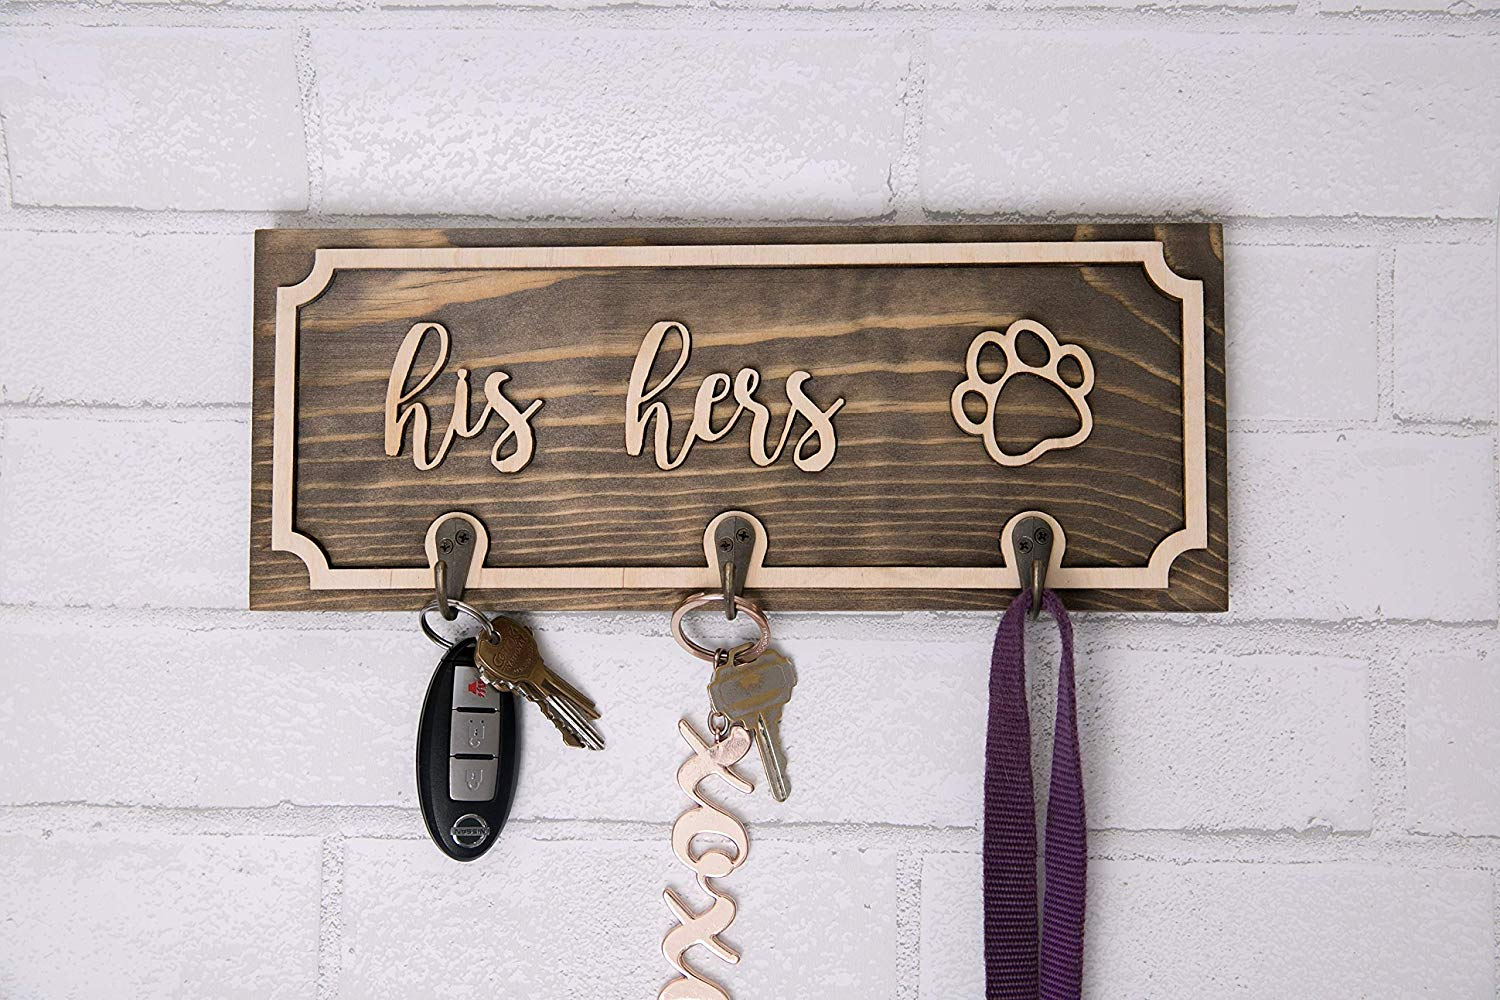 Handmade Wood Leash And Key Holder Custom Personalized His And Hers Cades And Birch